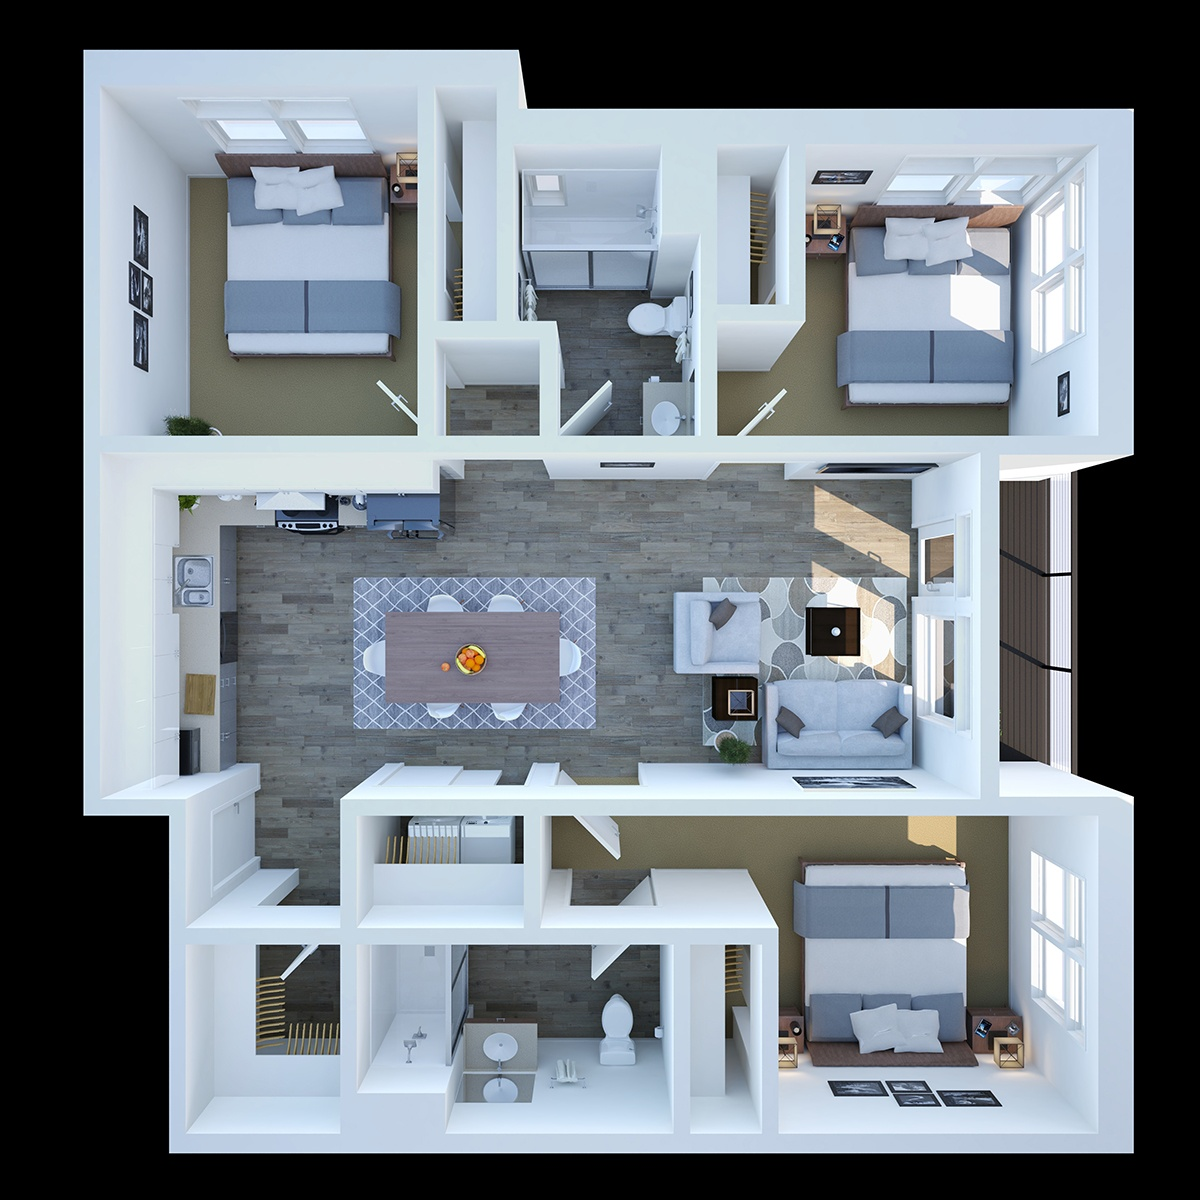 Three Bedroom - This is our legendary three bedroom, two bathroom floor plan featuring with 1,214 sq. ft. of living space.